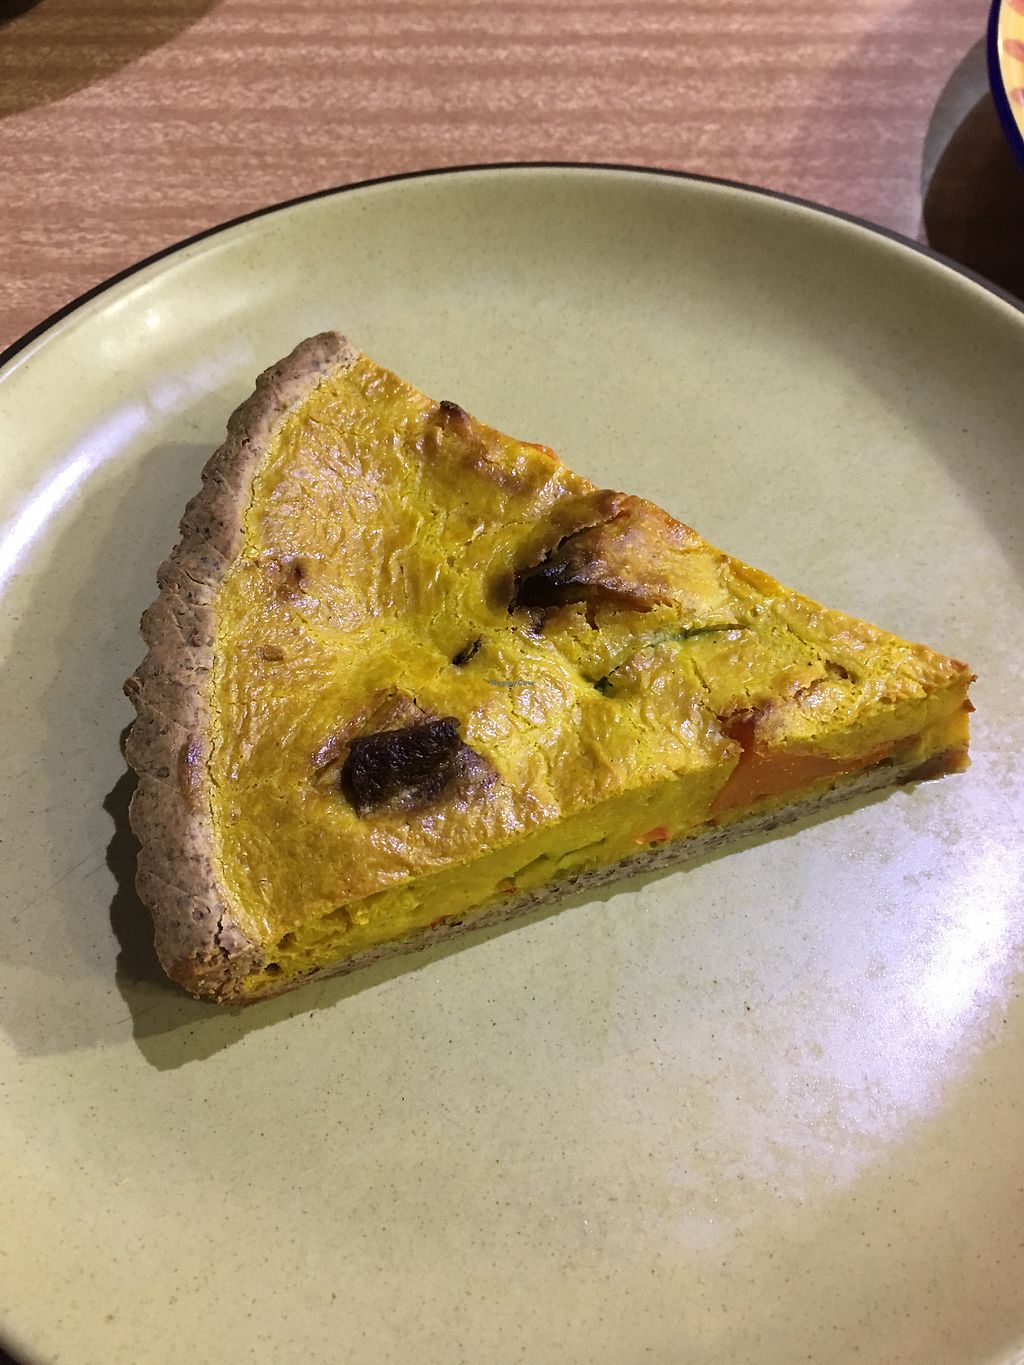 "Photo of Health Nuts Shop & Cafe  by <a href=""/members/profile/meianma"">meianma</a> <br/>Pumpkin quiche <br/> March 1, 2018  - <a href='/contact/abuse/image/78492/365487'>Report</a>"